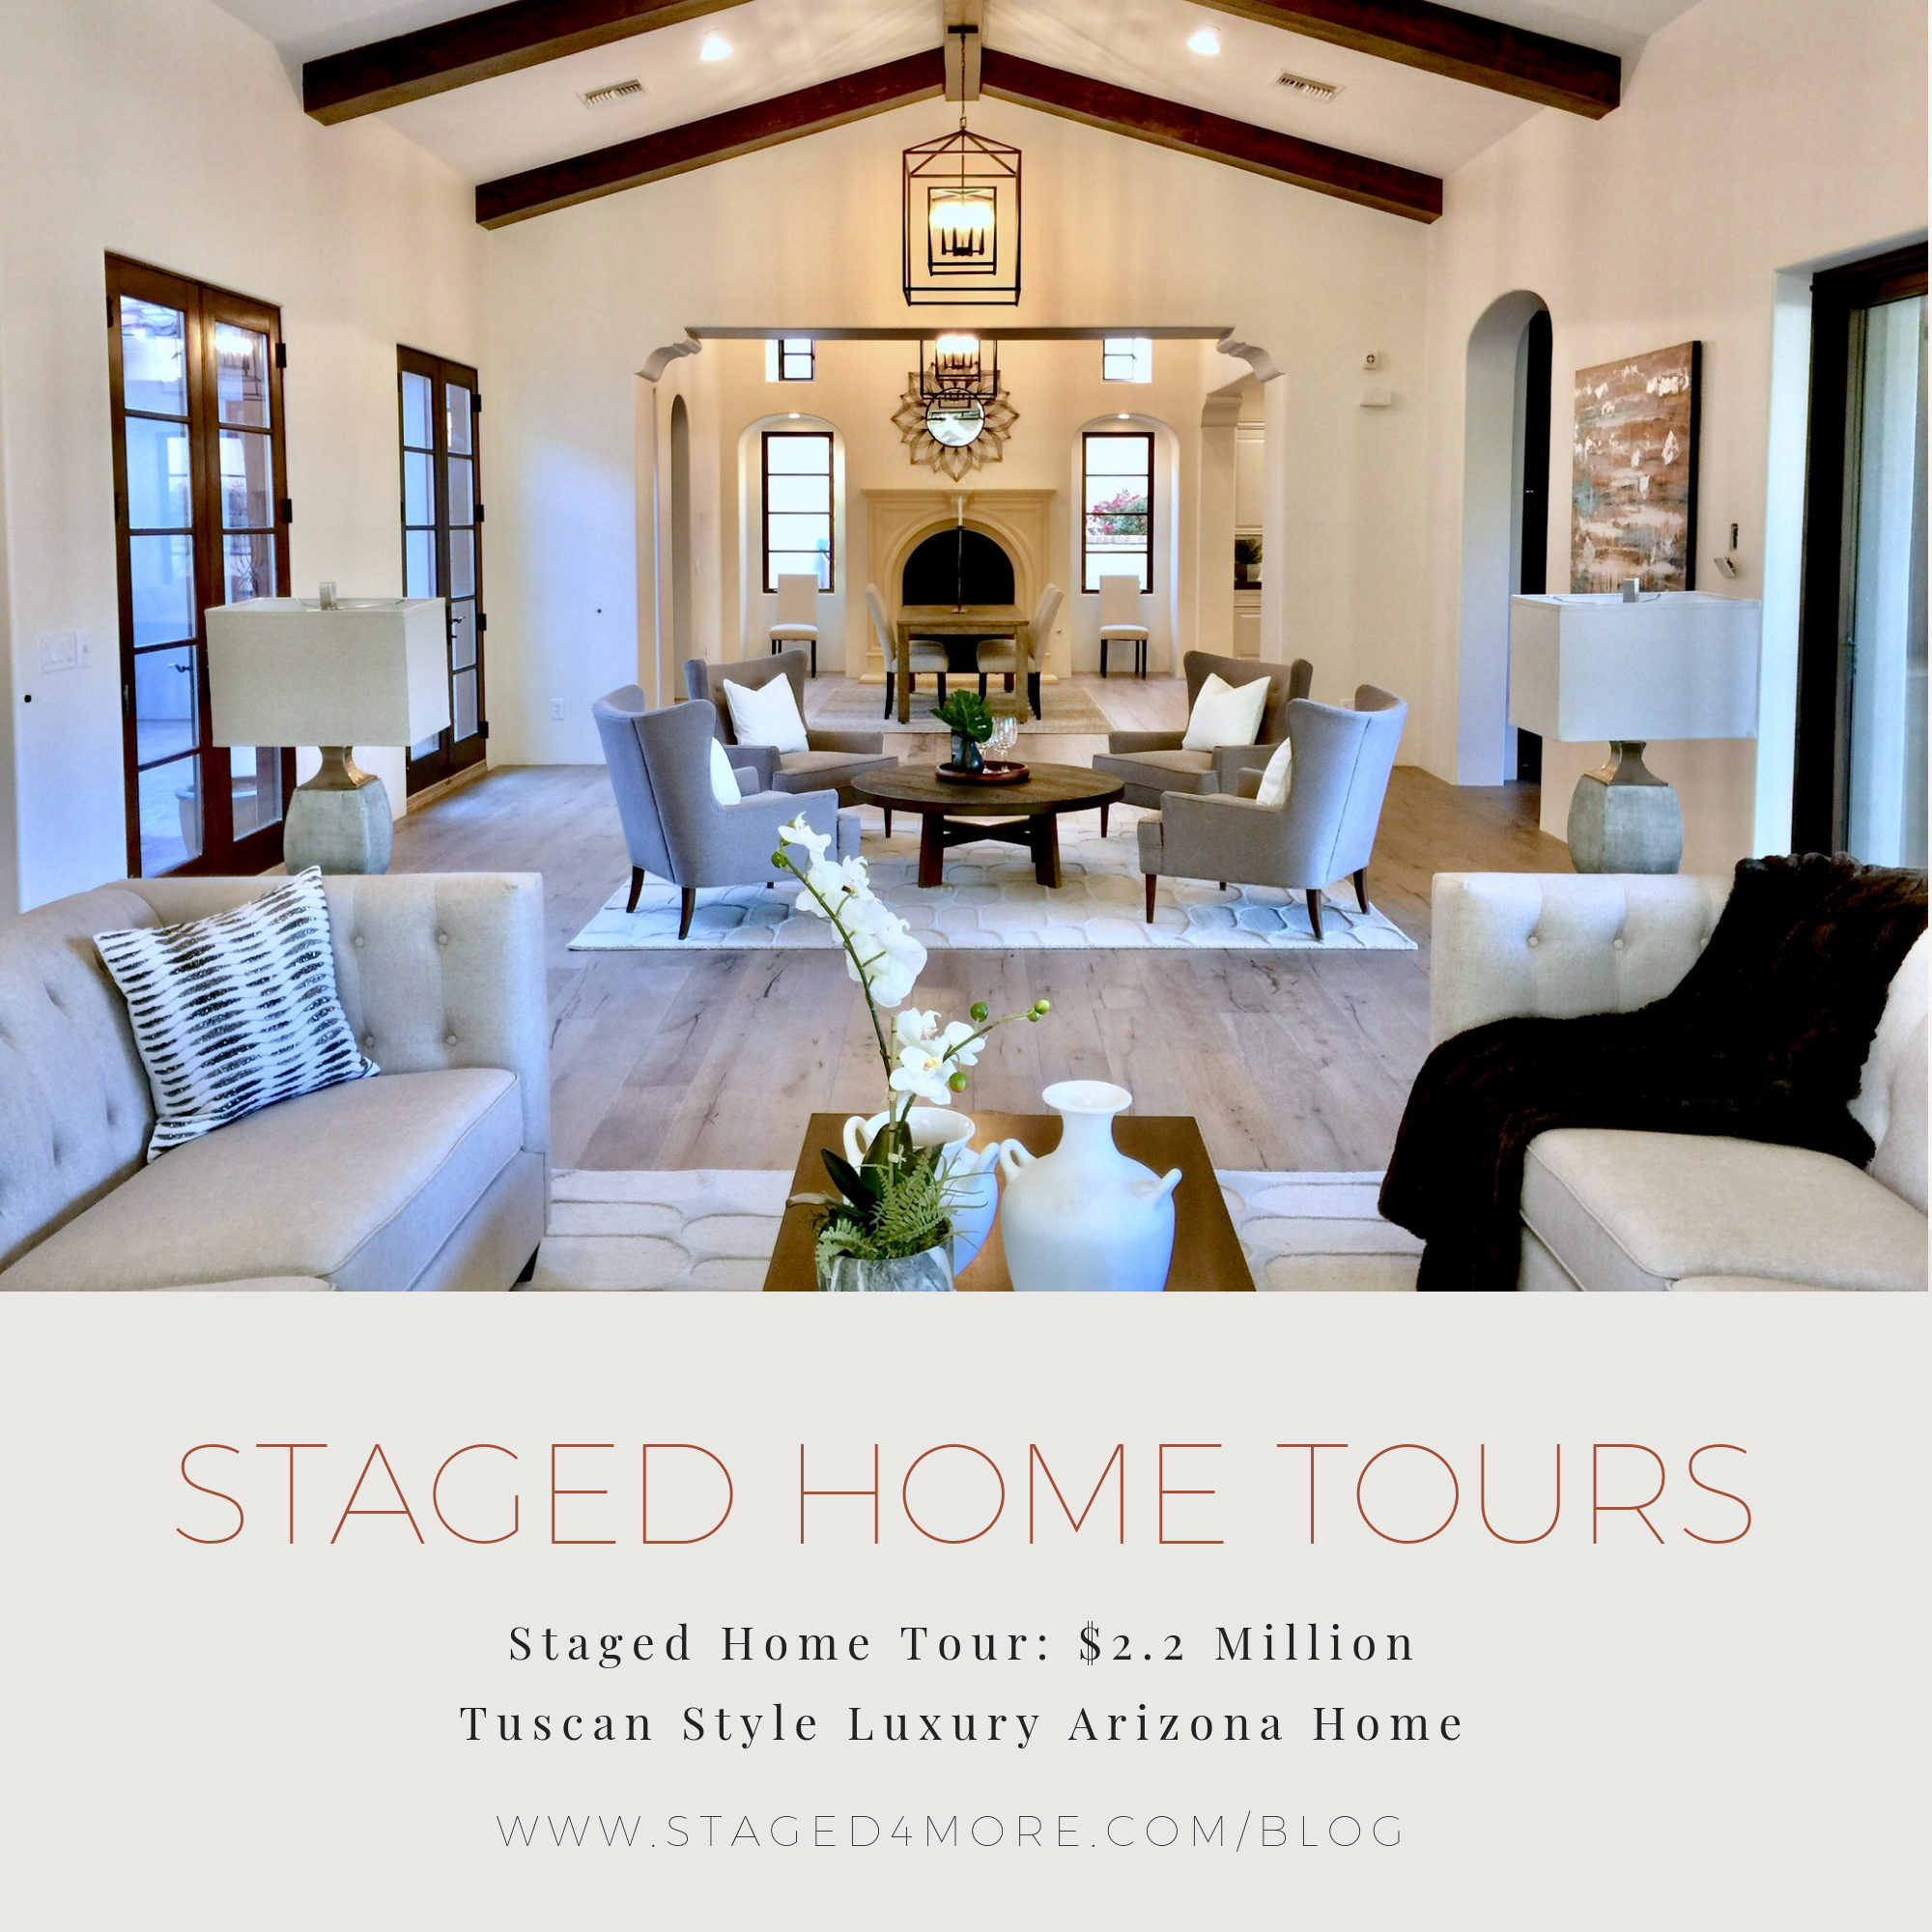 Staged Home Tour: $2.2 Million Tuscan Style Luxury Arizona Home | Staged4more School of Home Staging